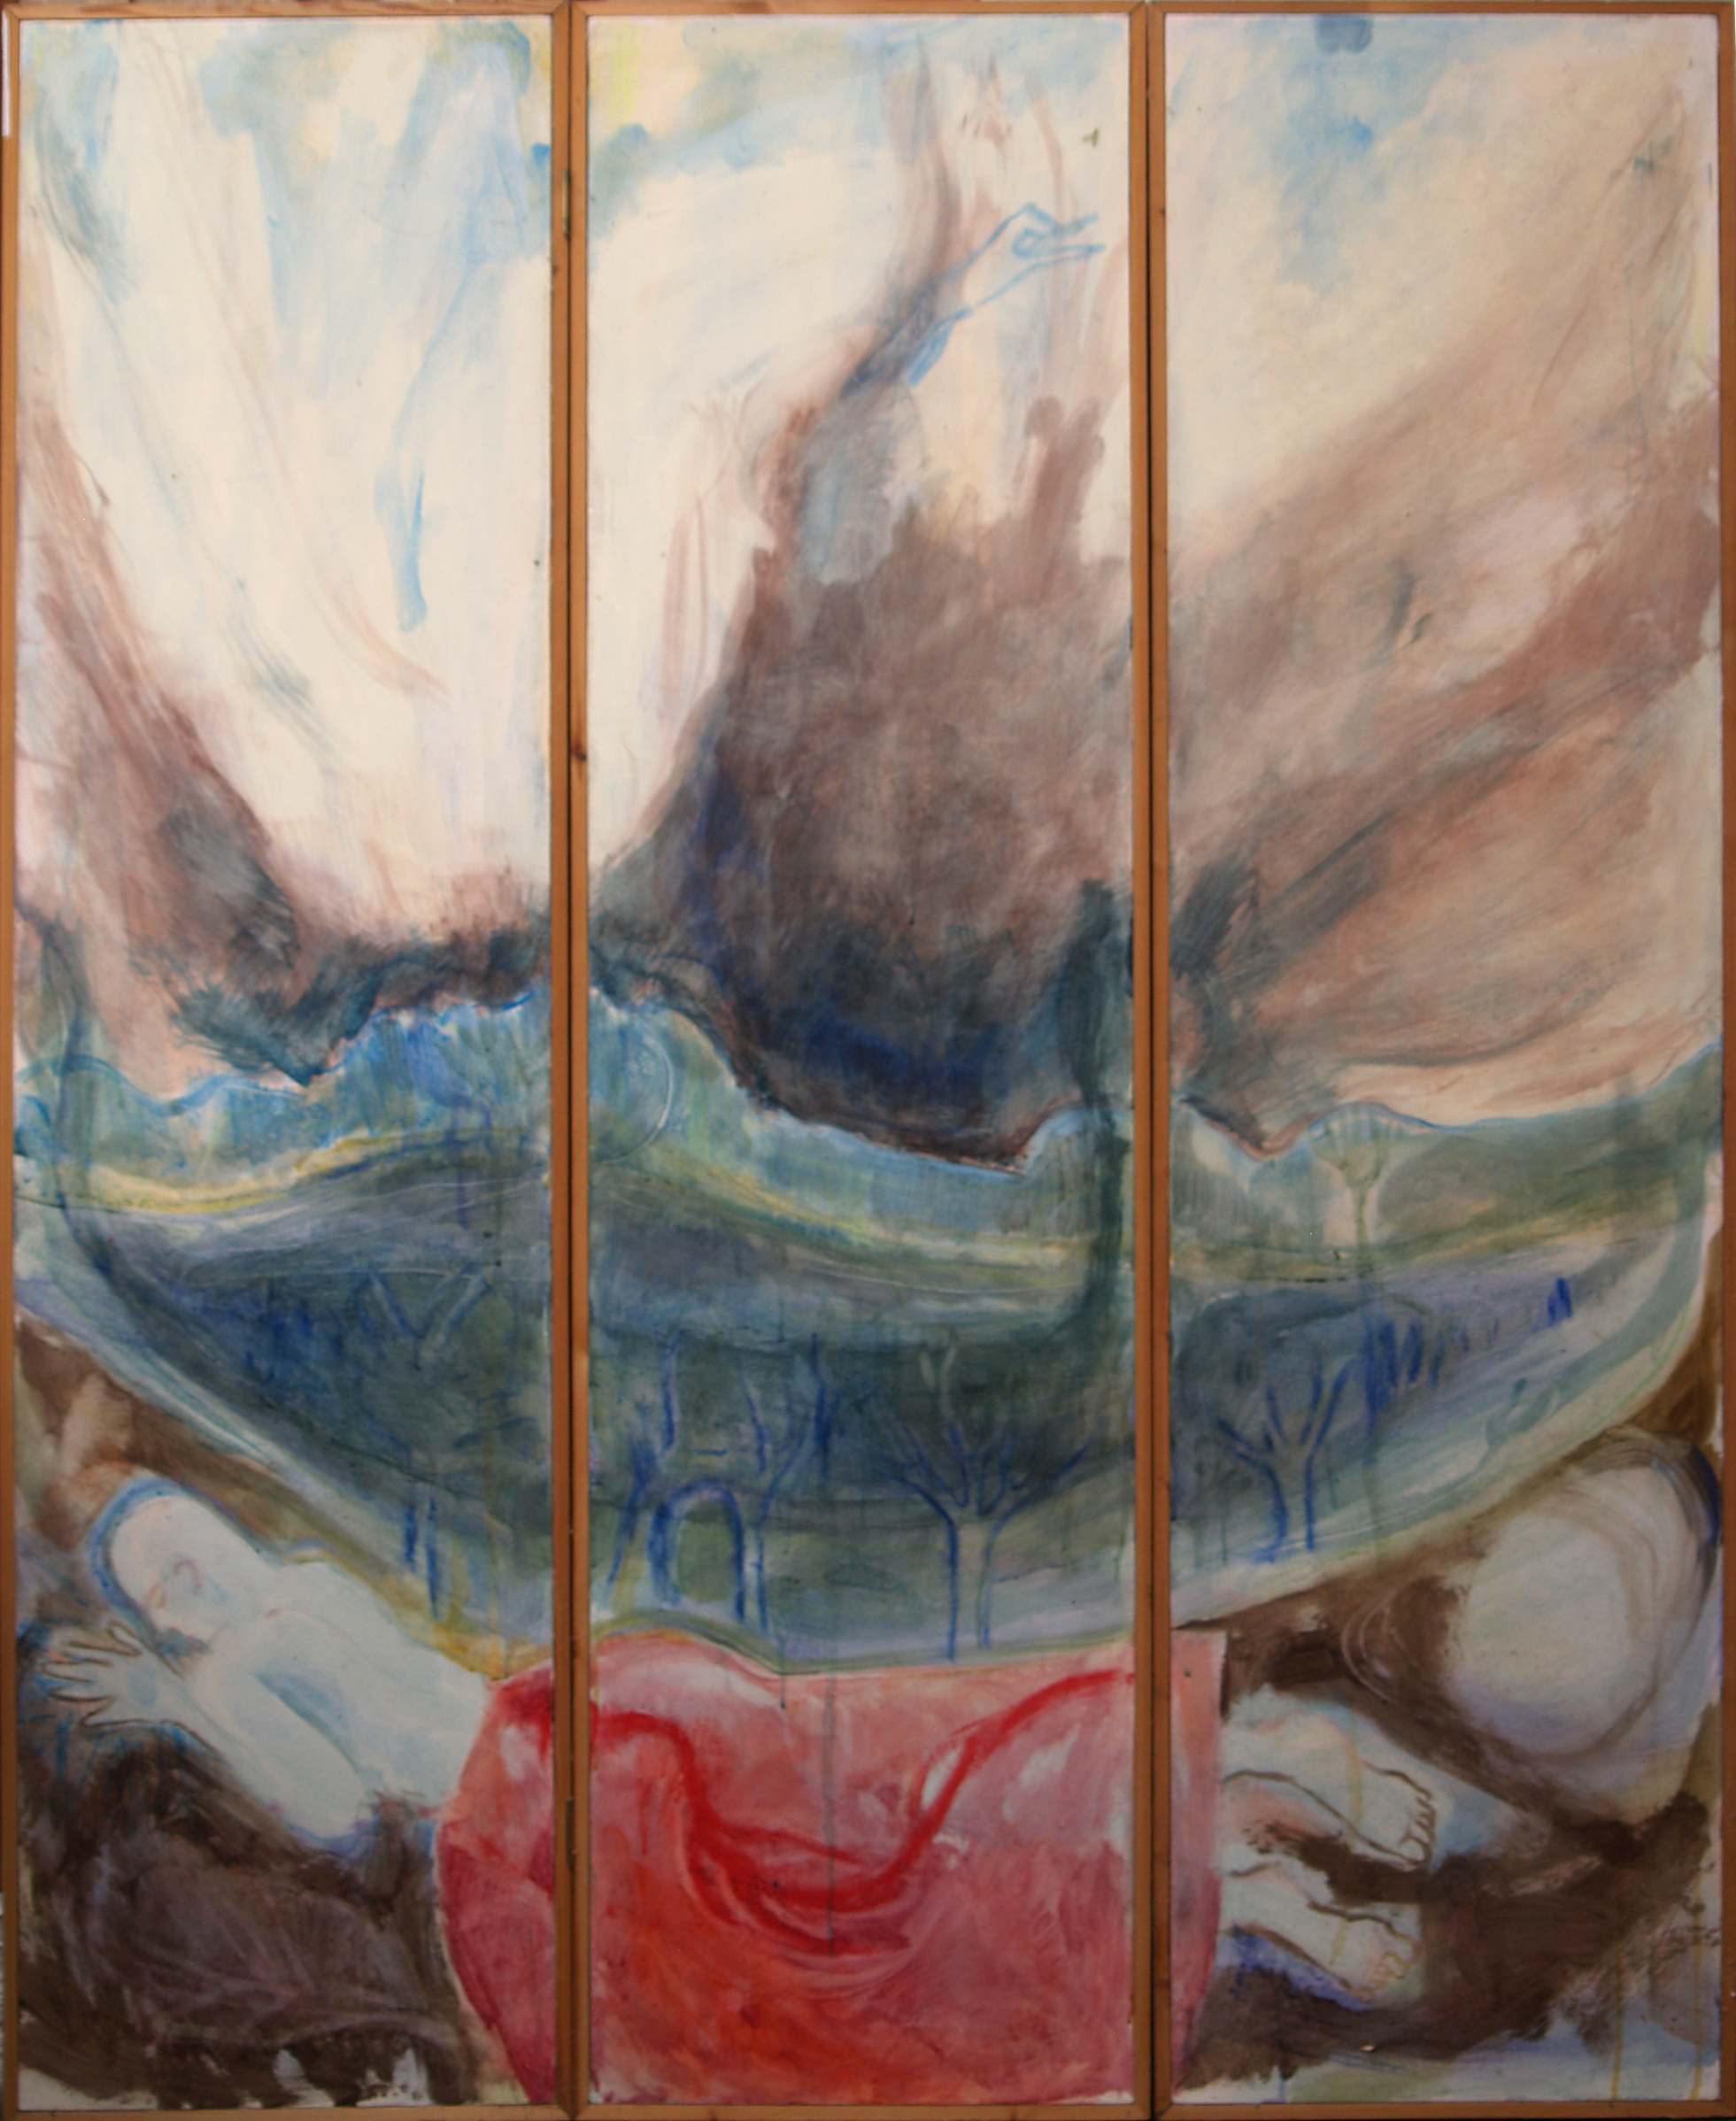 Triptych - Embrace - 2002 - Acrylic/mixed media on Screen - Wood & Canvas - 161 X 132cm